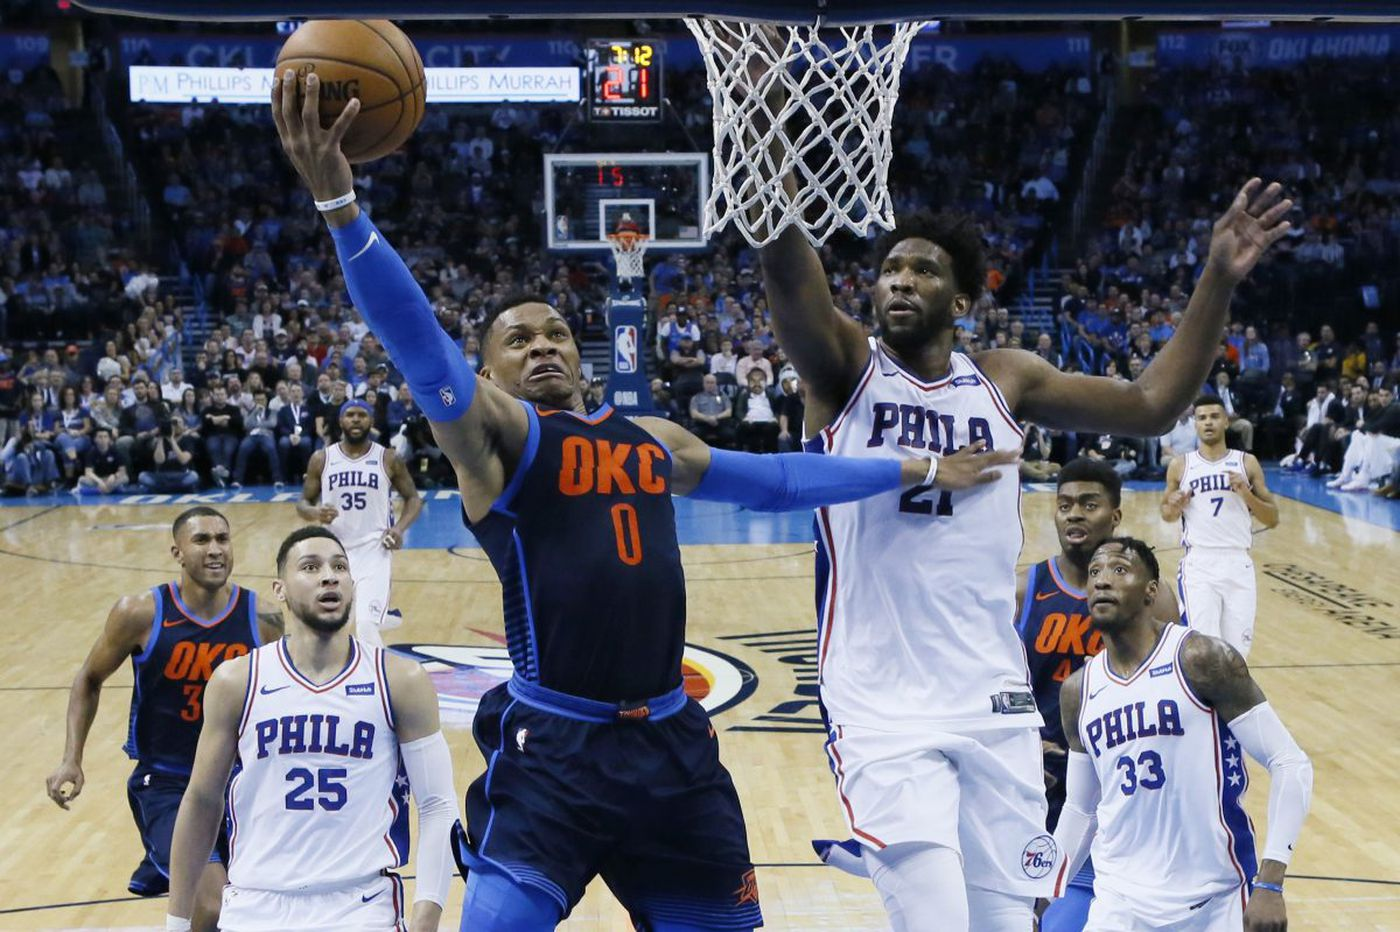 Sixers fall to Thunder as Russell Westbrook scores 37